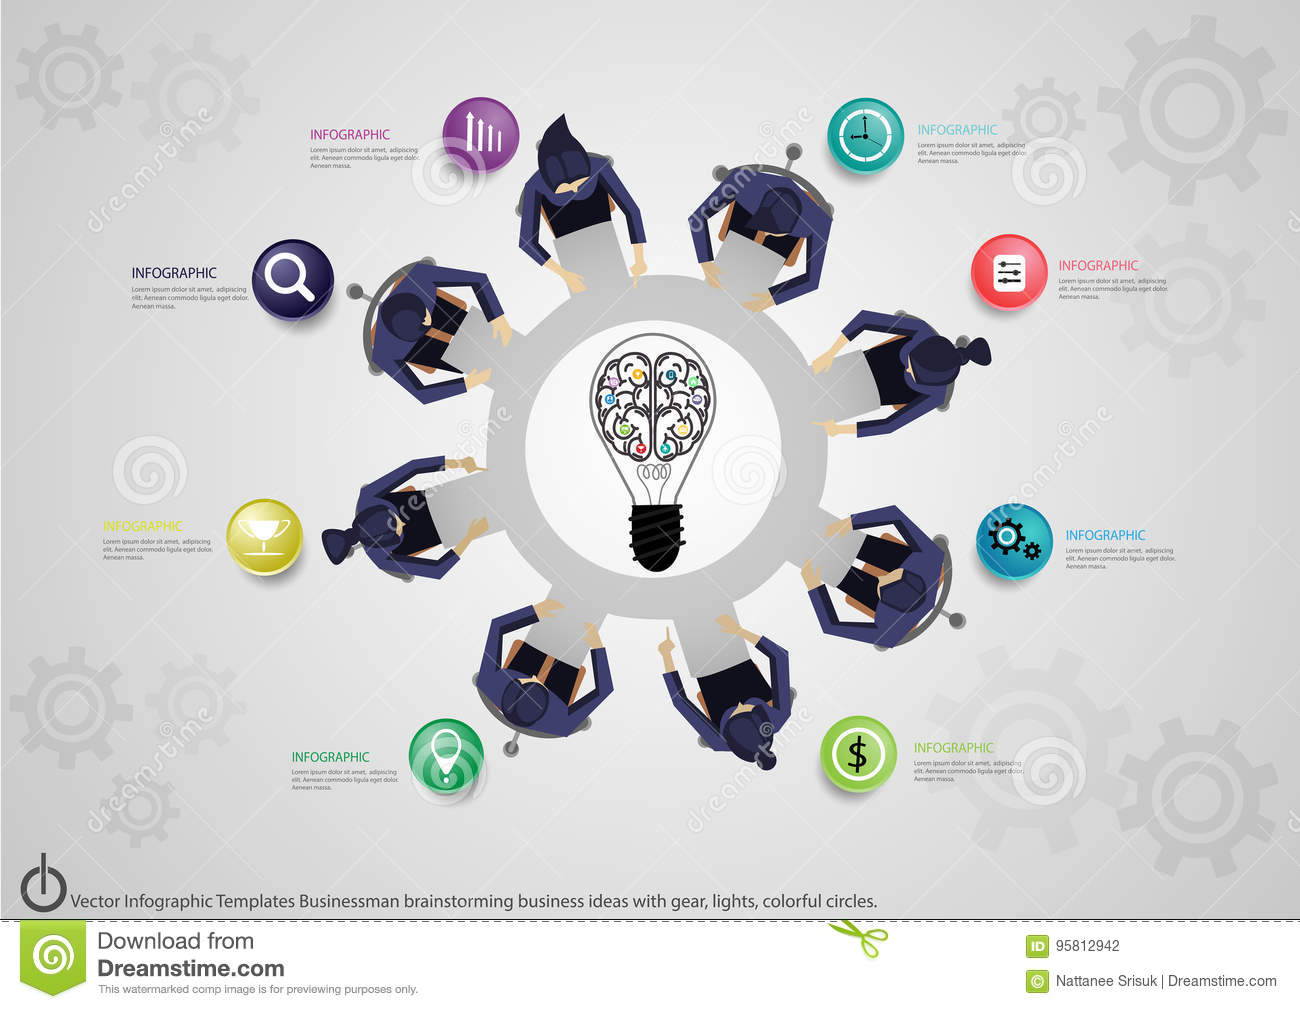 Vector Infographic Templates Businessman brainstorming business ideas with gear, lights, colorful circles